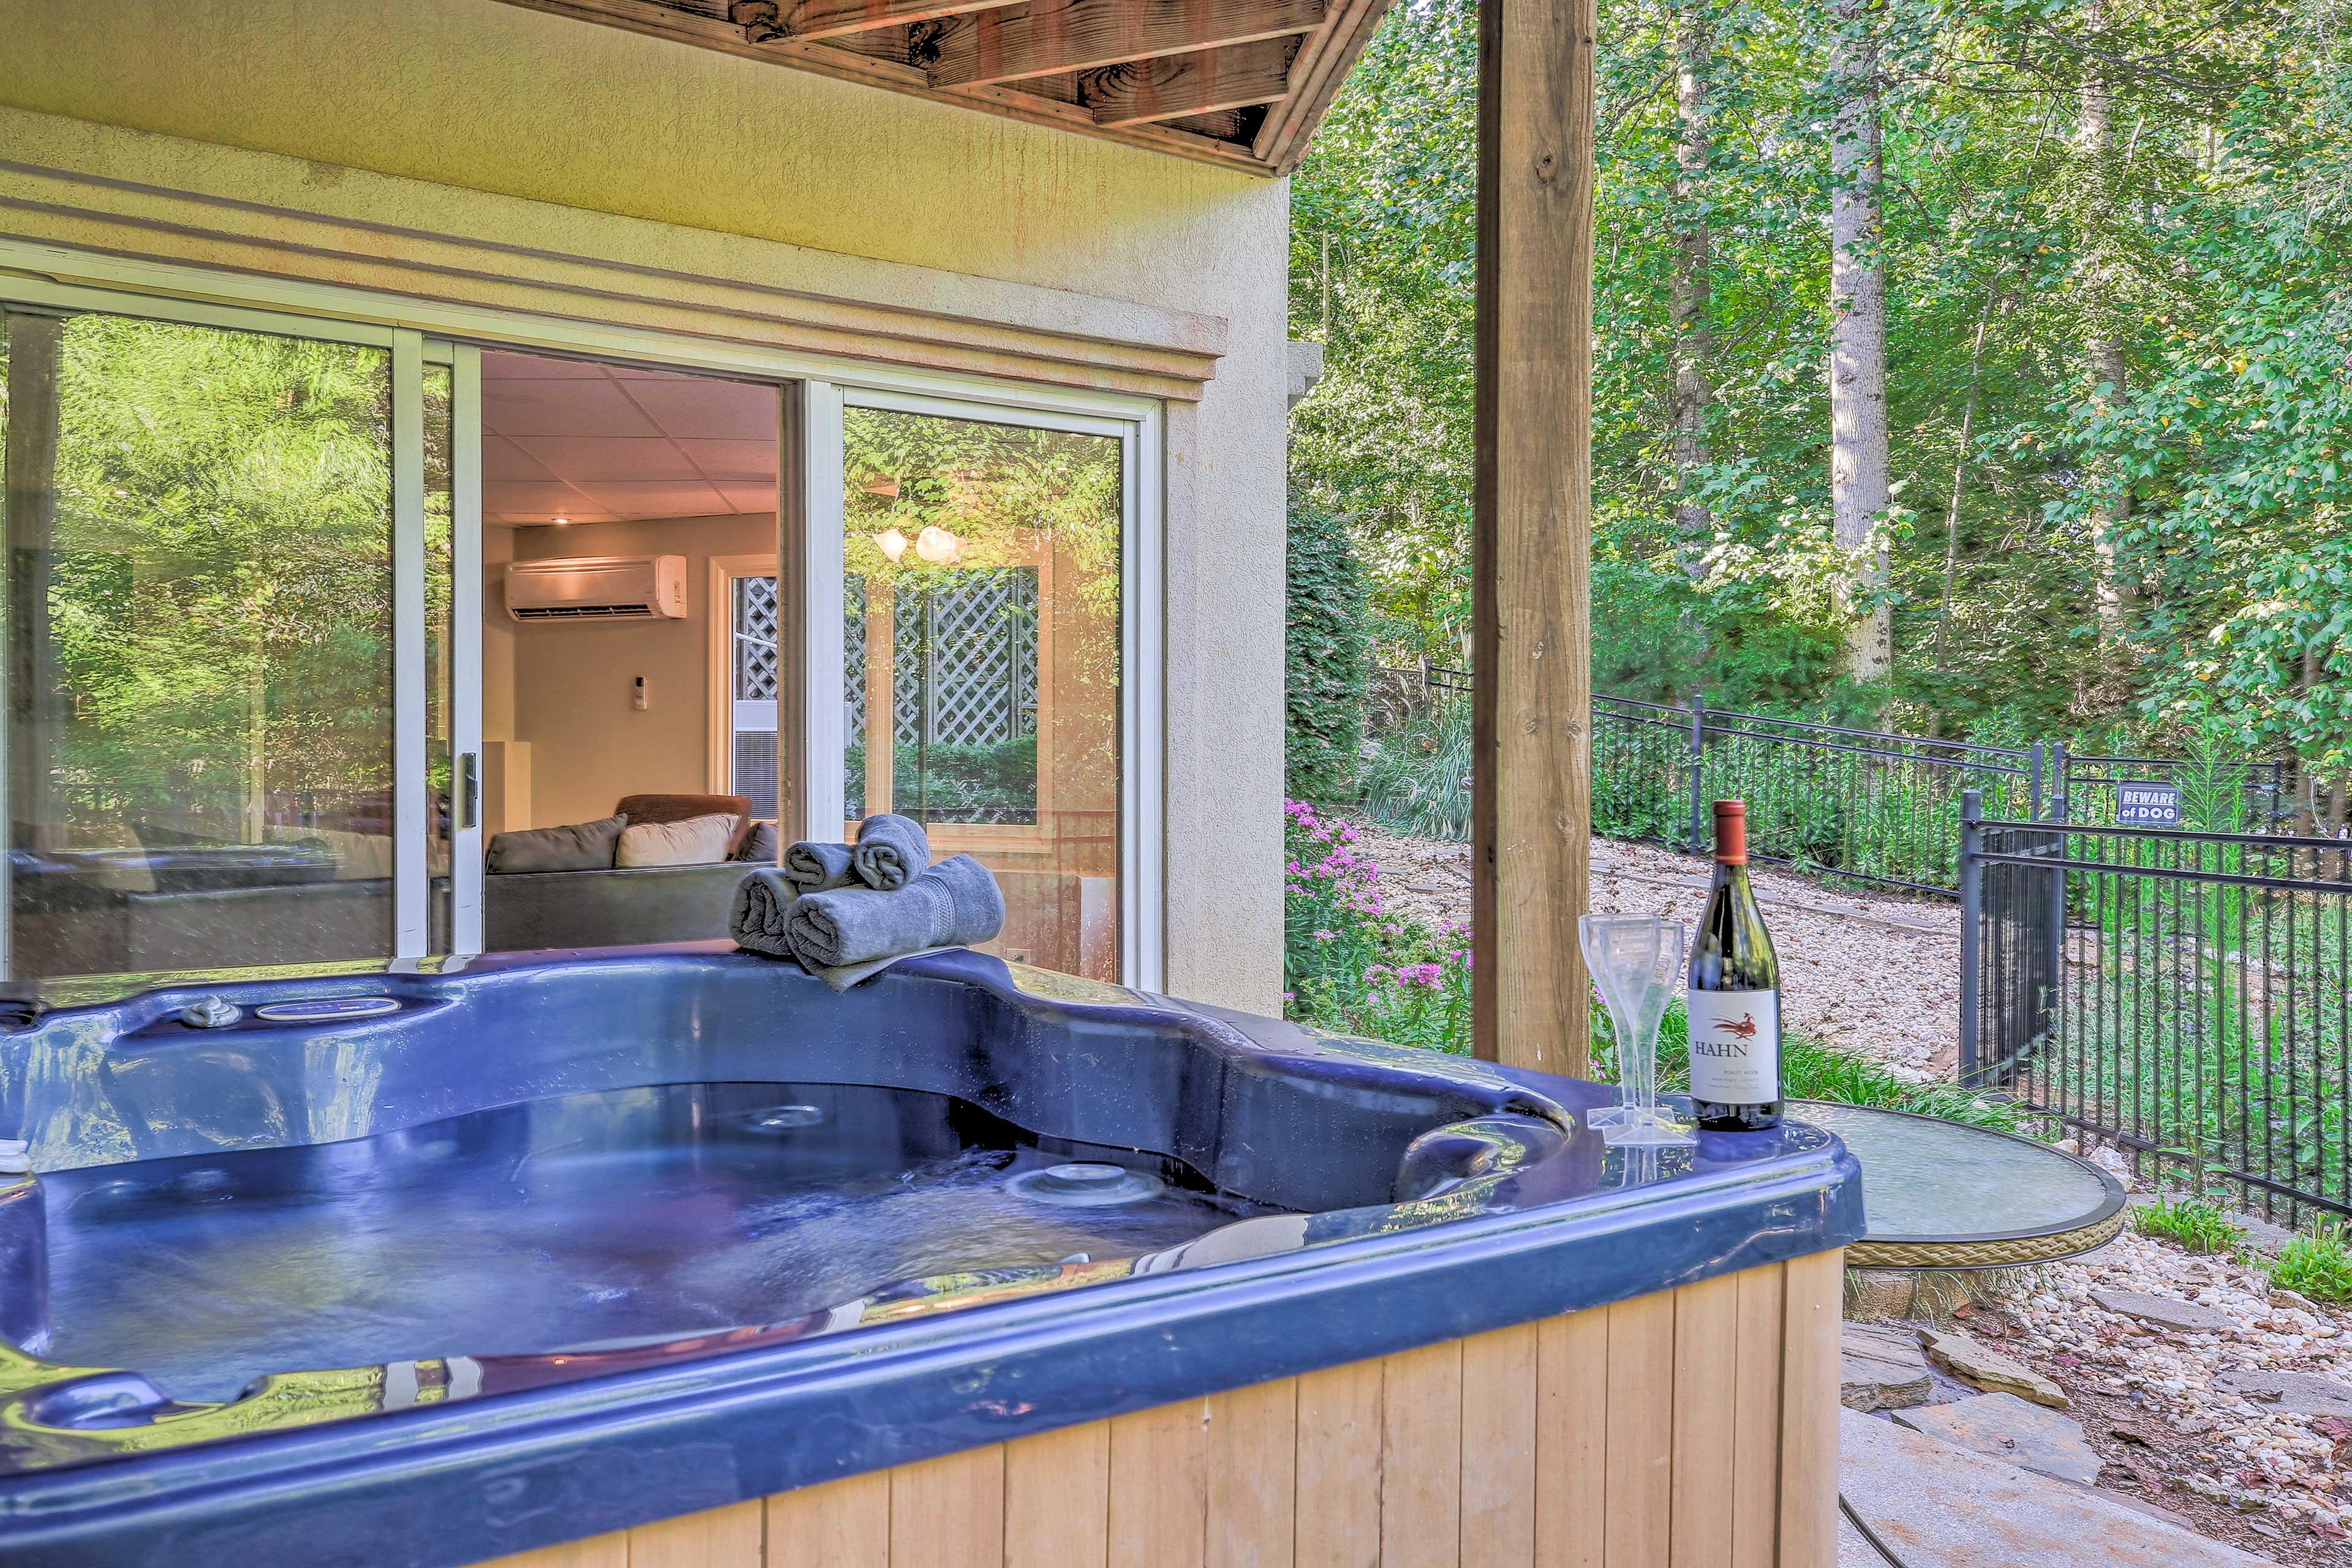 Soak into vacation mode as soon as you arrive at this Gainesville rental home.